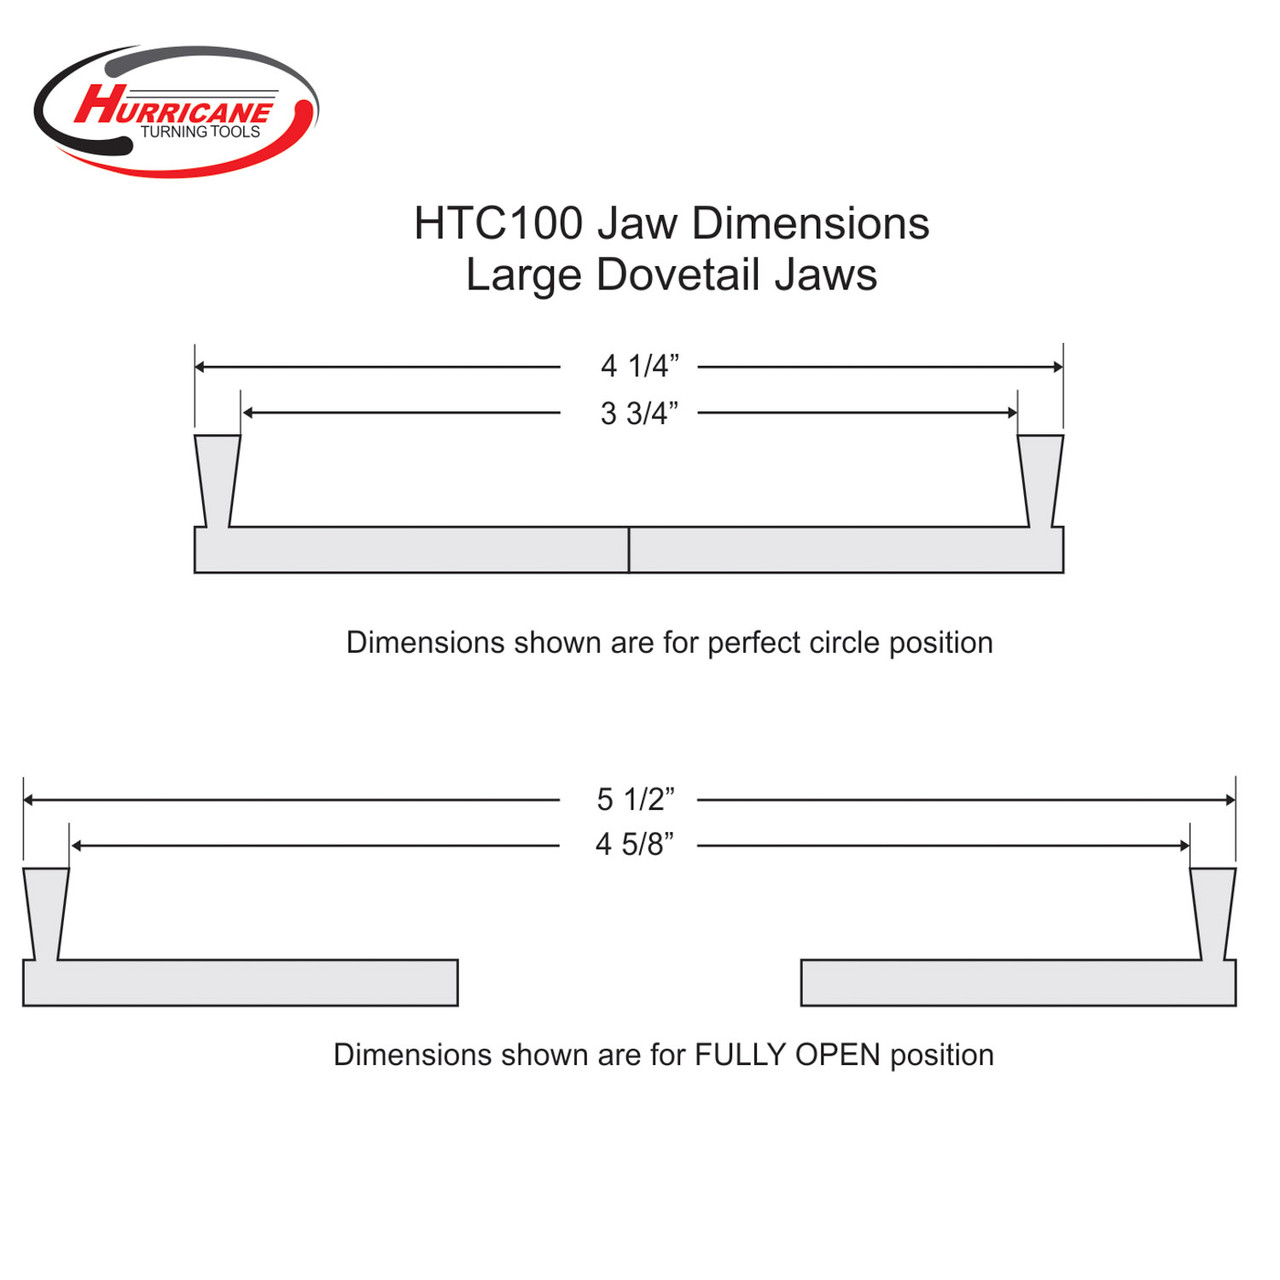 Hurricane Large Dovetail Jaws for the HTC100 Chuck